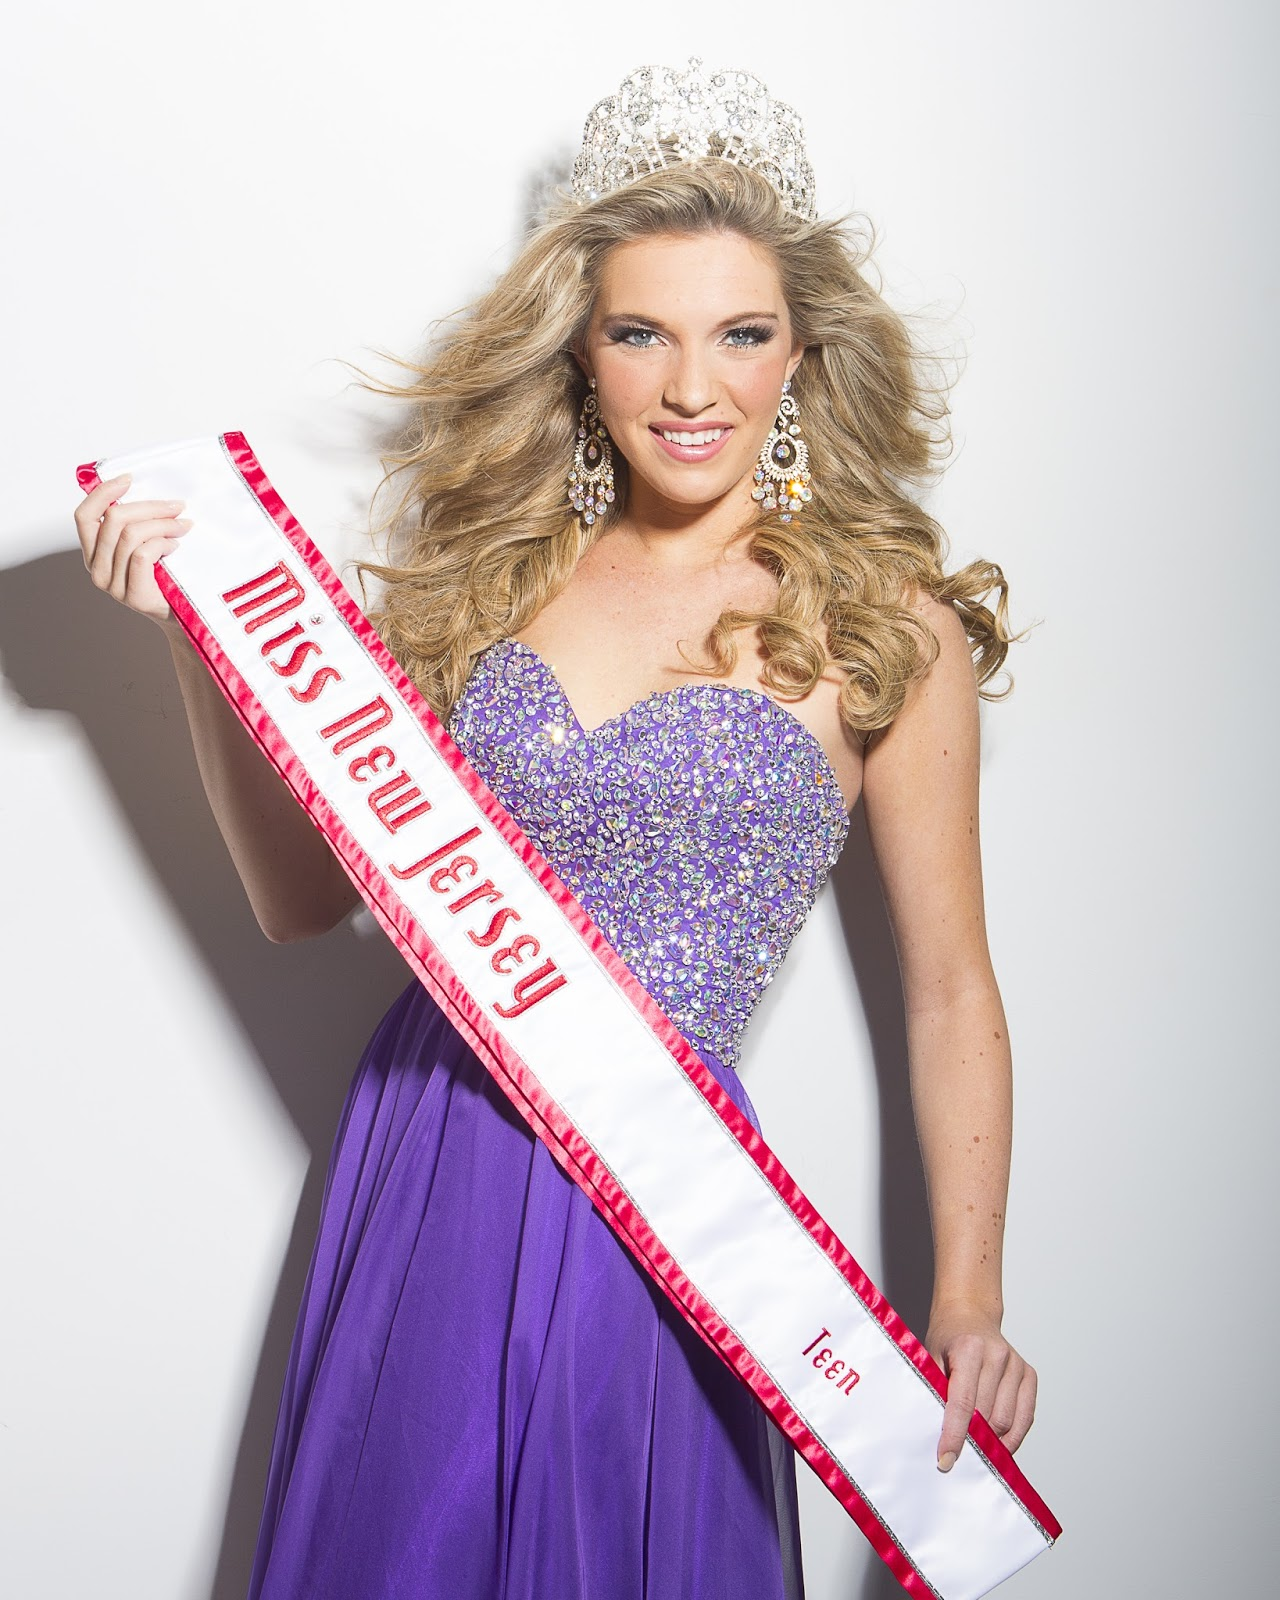 Miss New Jersey Teen USA - Asbury Park Press